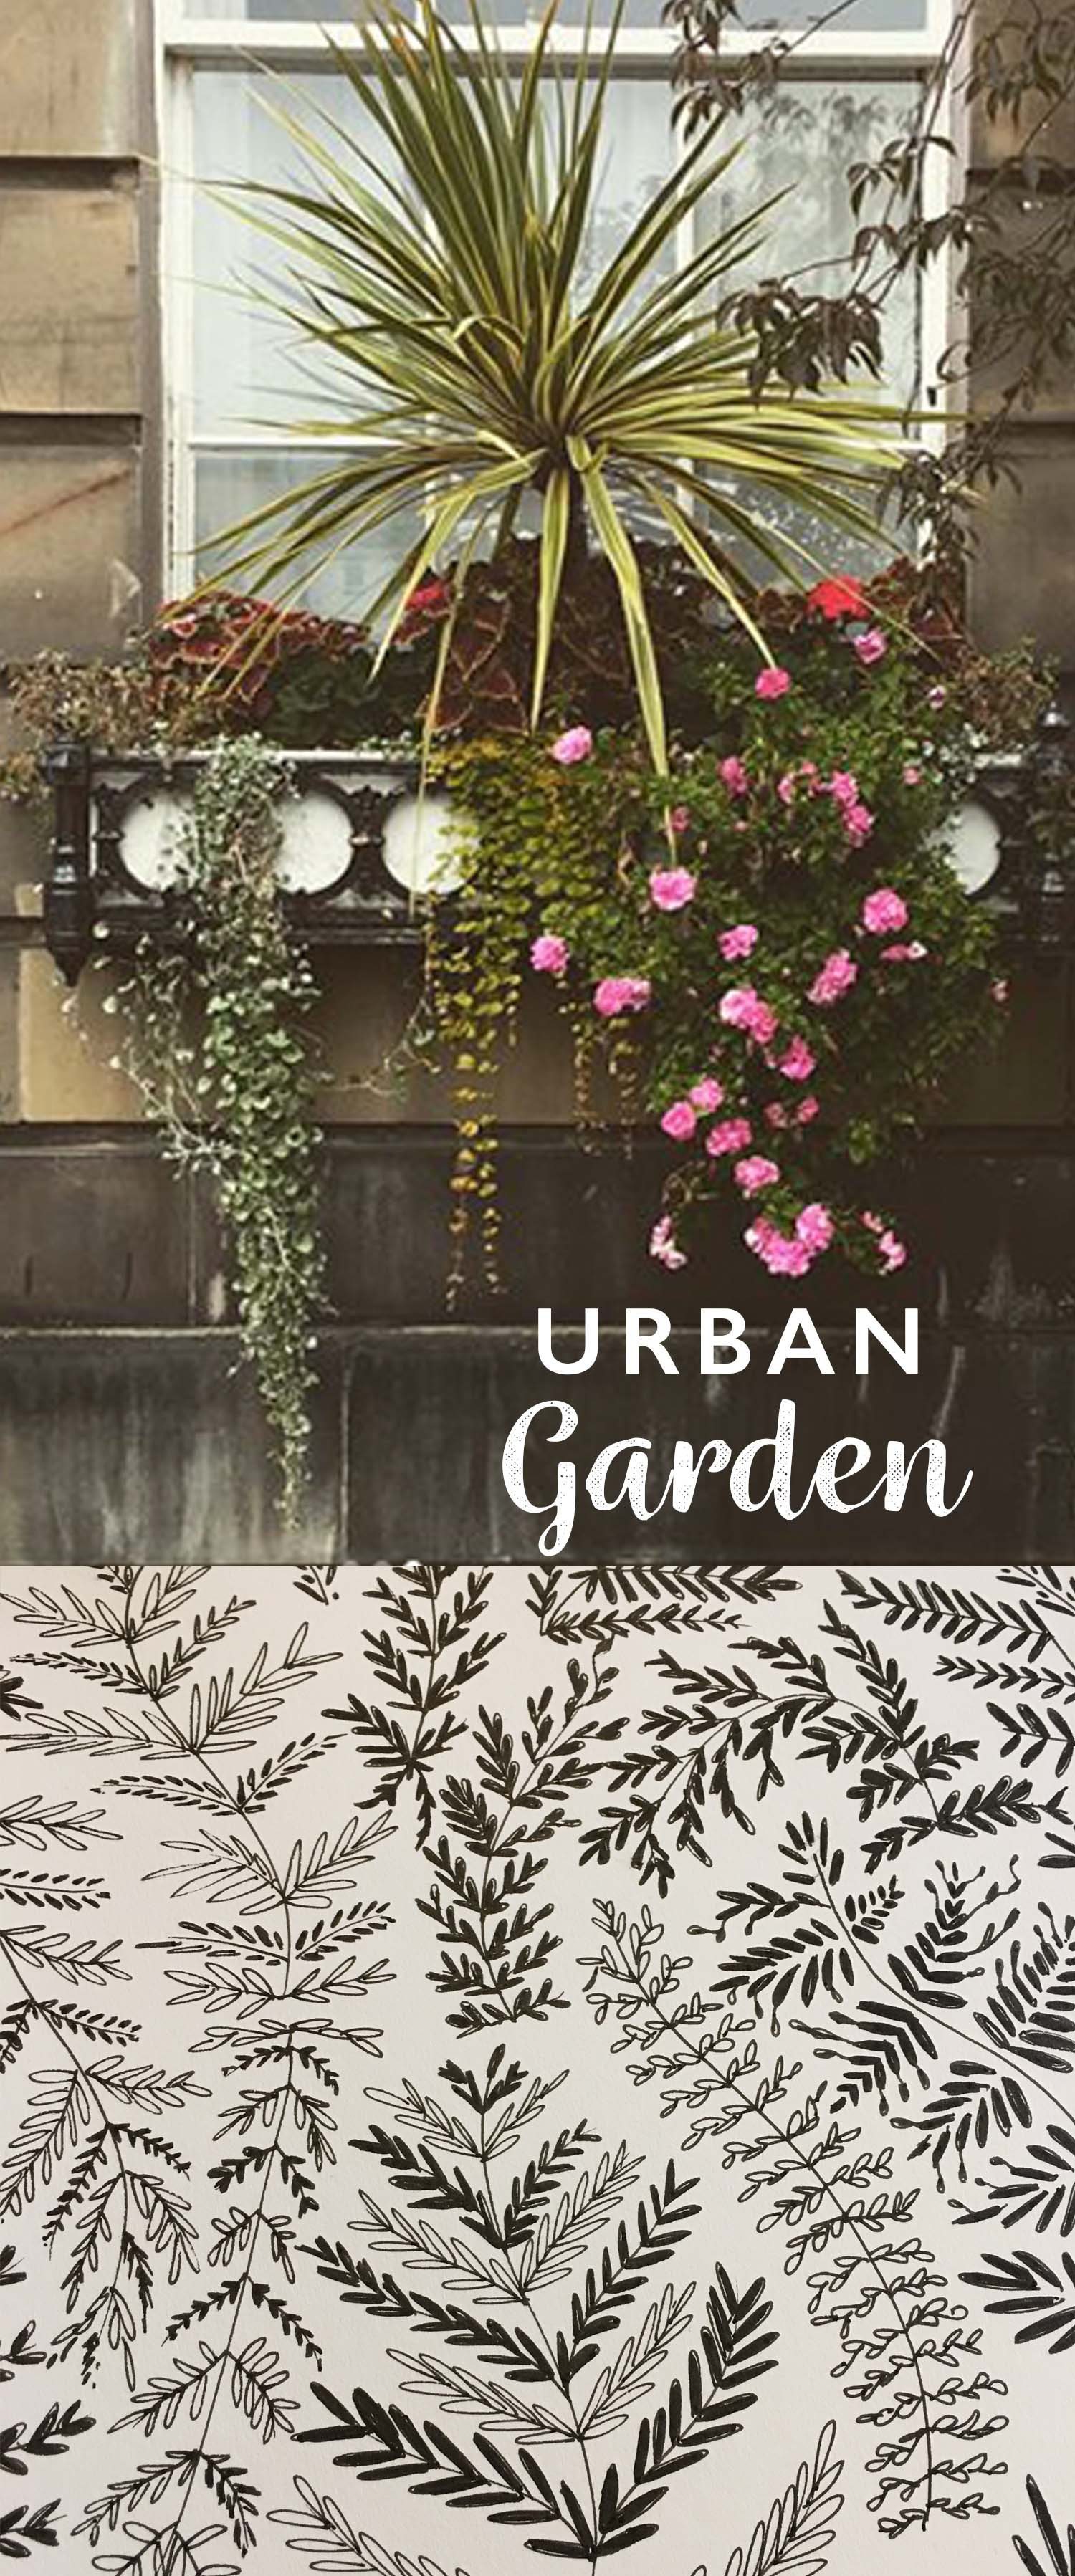 Urban gardens and botanical illustration by Cherith Harrison